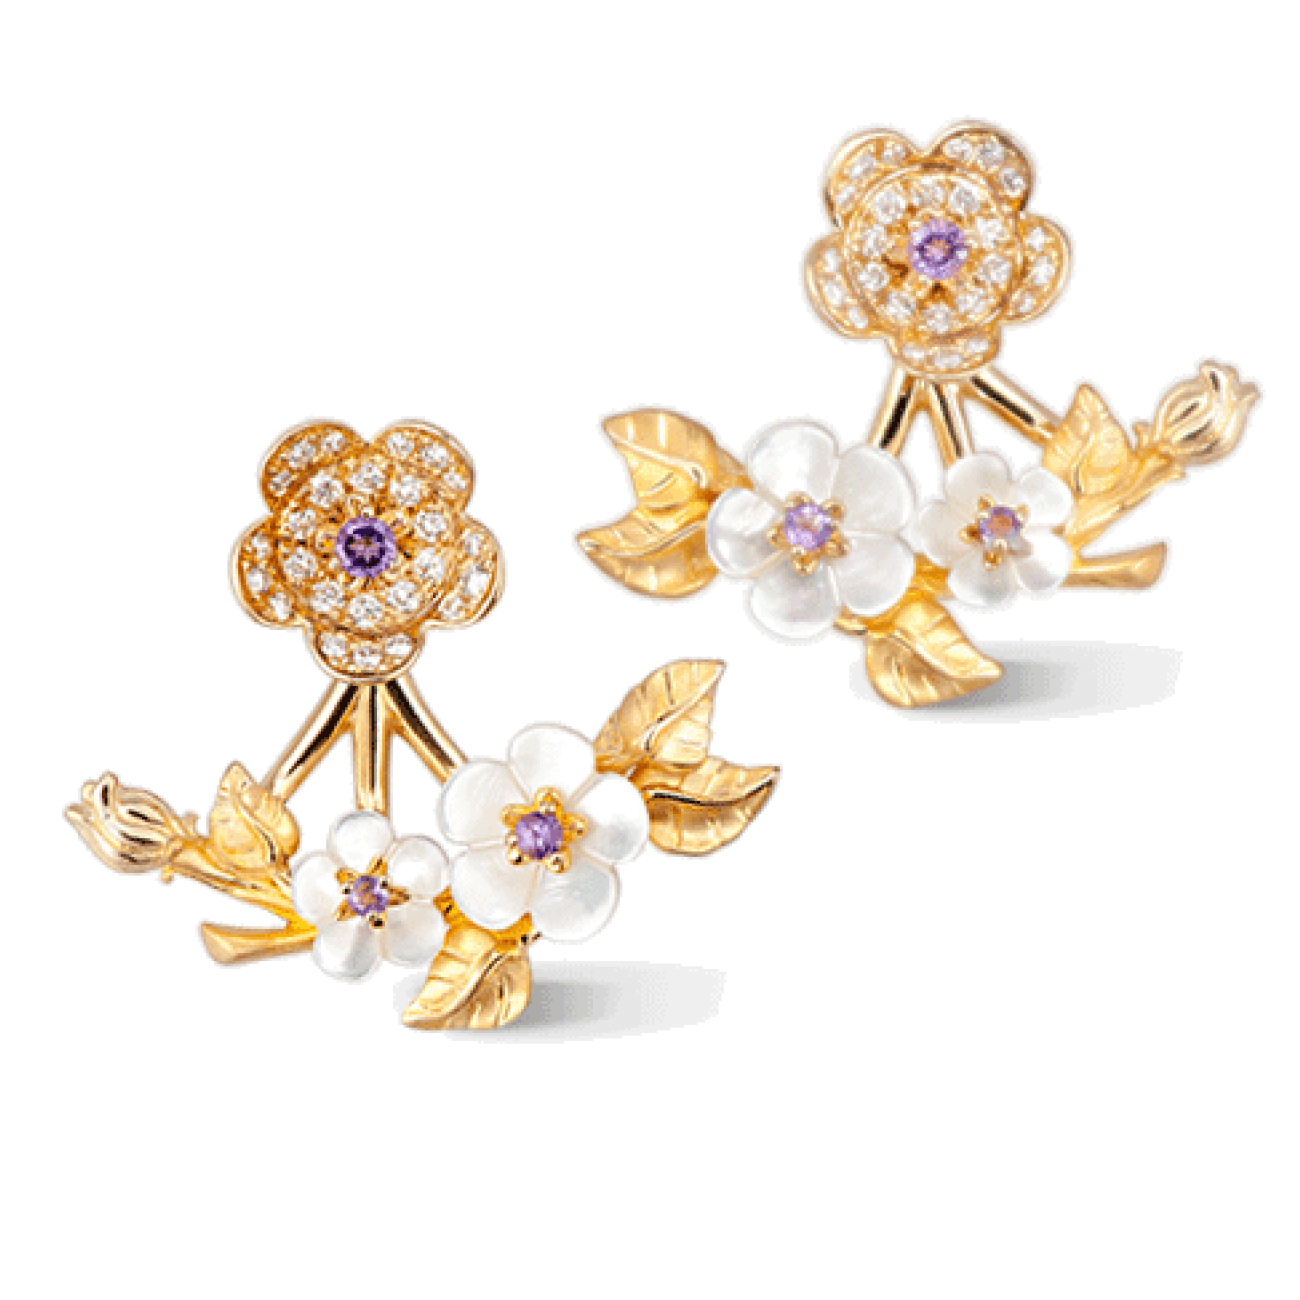 Carrera Y Carrera Jewelry - Cerezo Medium Earrings | Manfredi Jewels